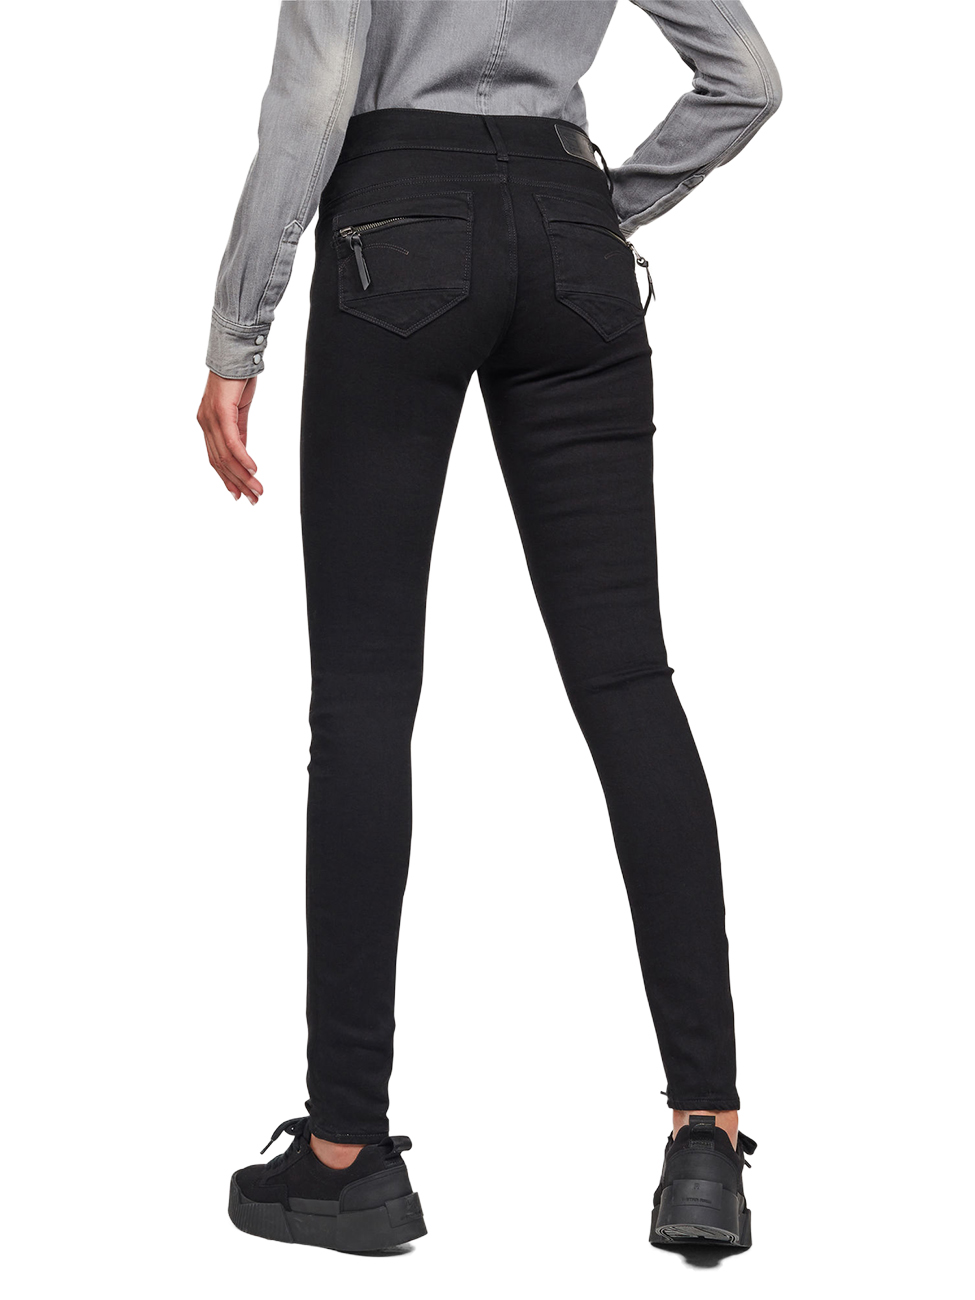 g-star-damen-jeans-midge-cody-mid-skinny-fit-schwarz-pitch-black